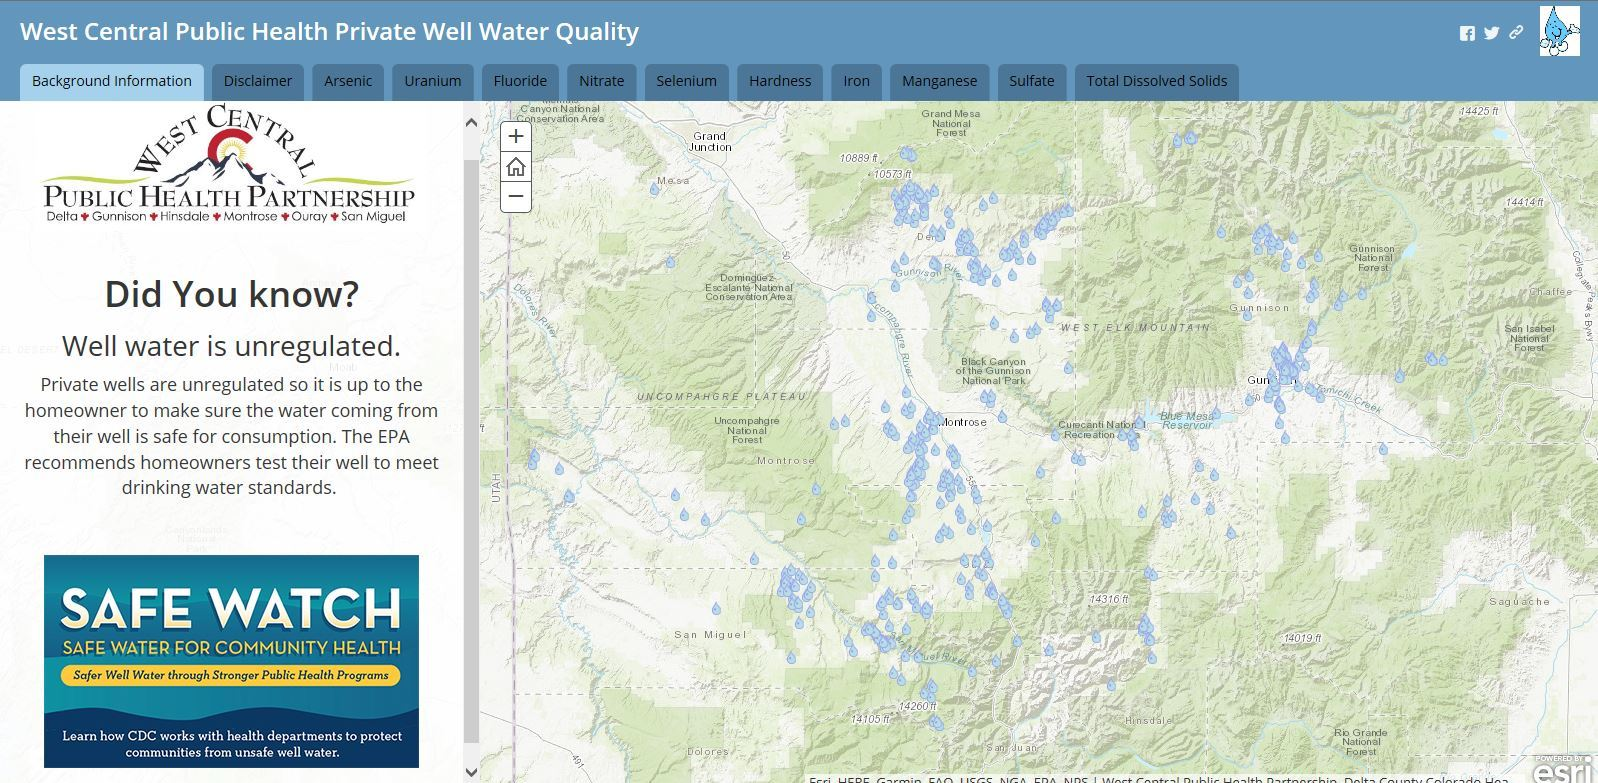 Well Water Quality Map Opens in new window